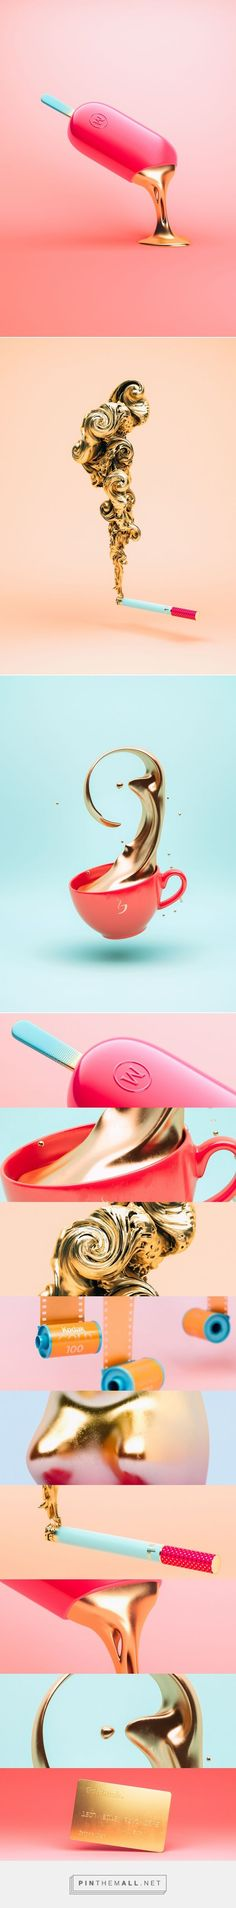 awesome GoldRush on Behance... - a grouped images picture